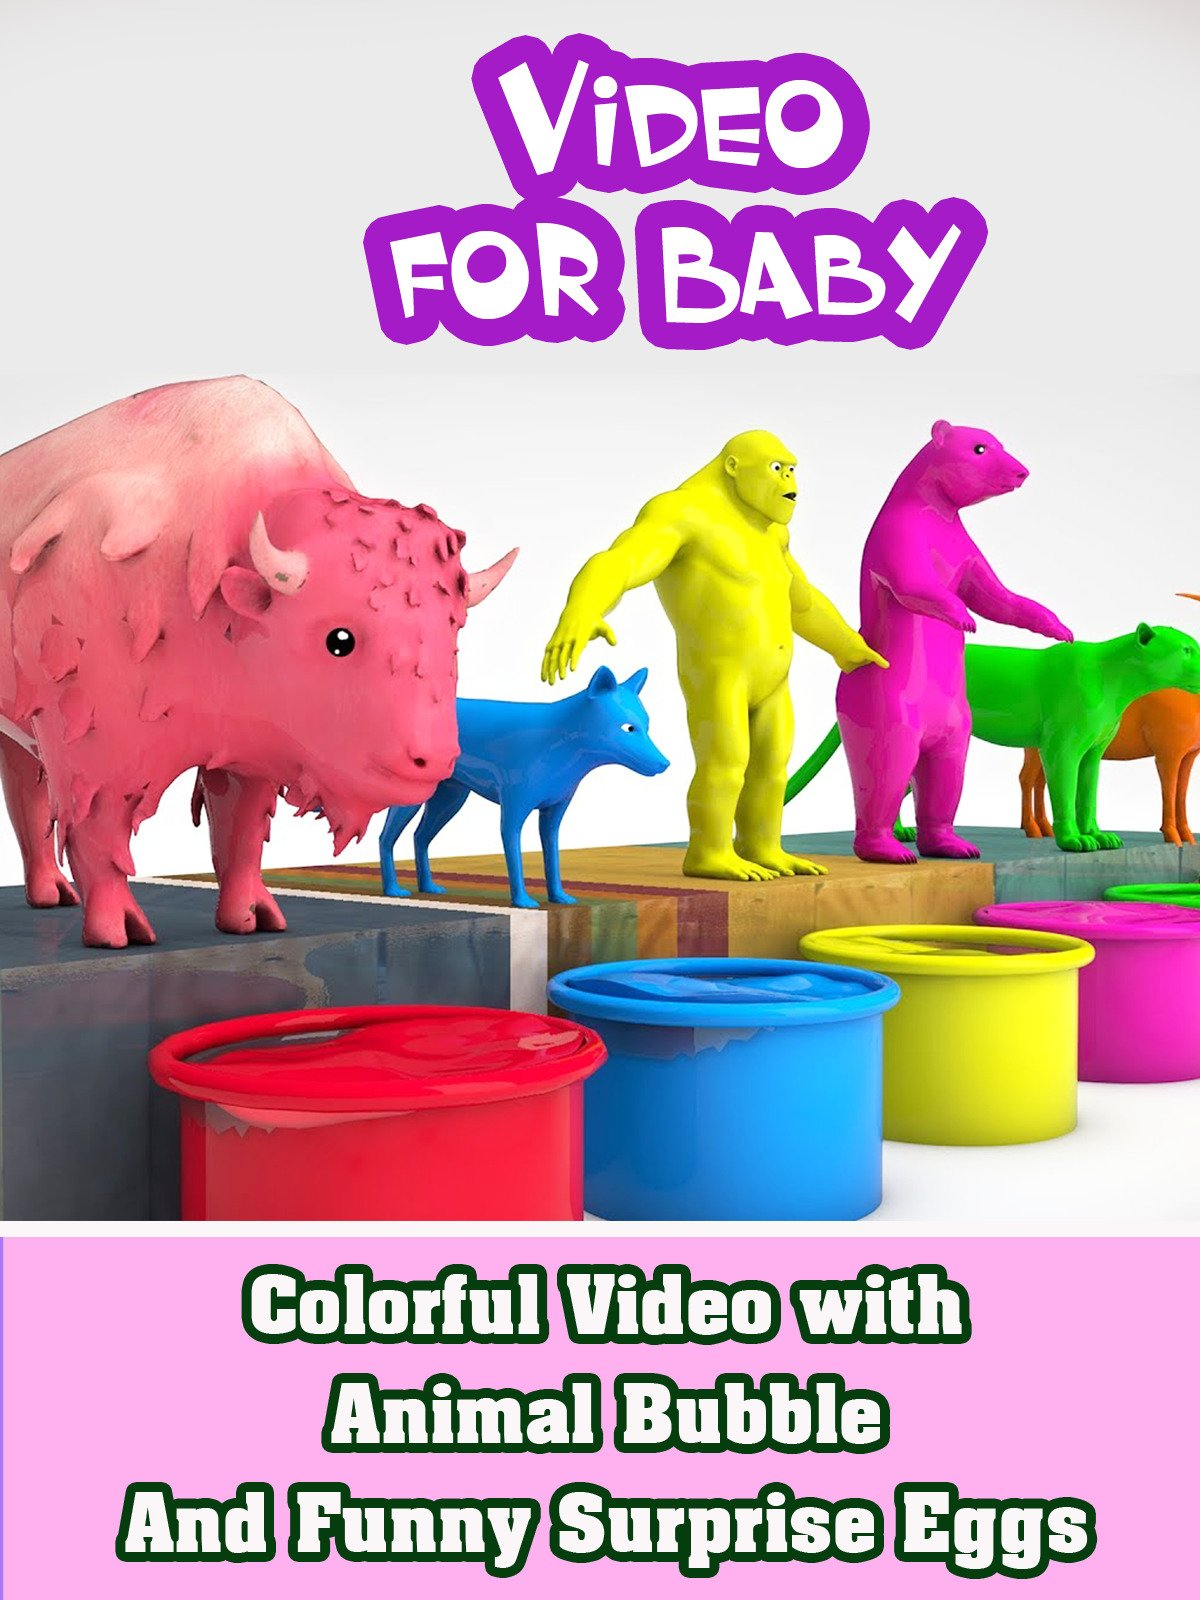 Colorful Video with Animal Bubble And Funny Surprise Eggs